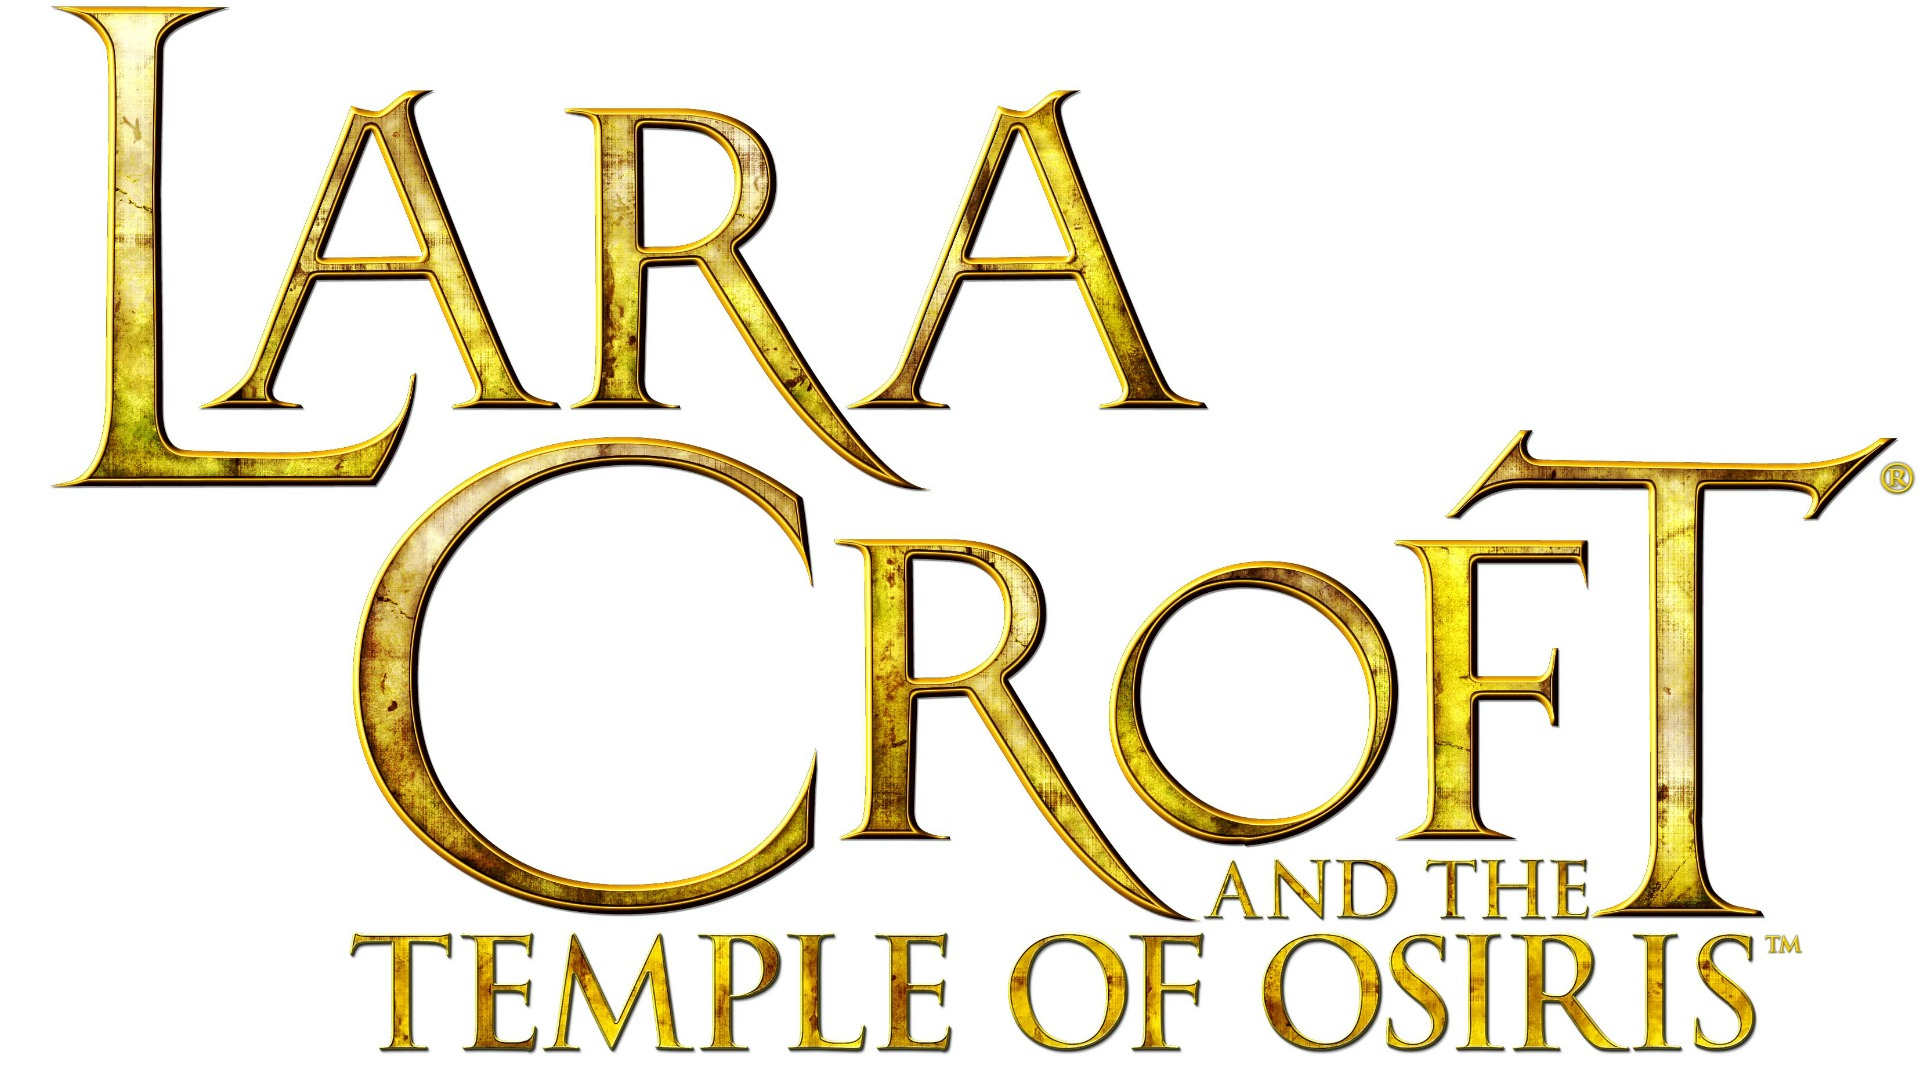 Lara Croft and The Temple of Osiris wallpaper 2